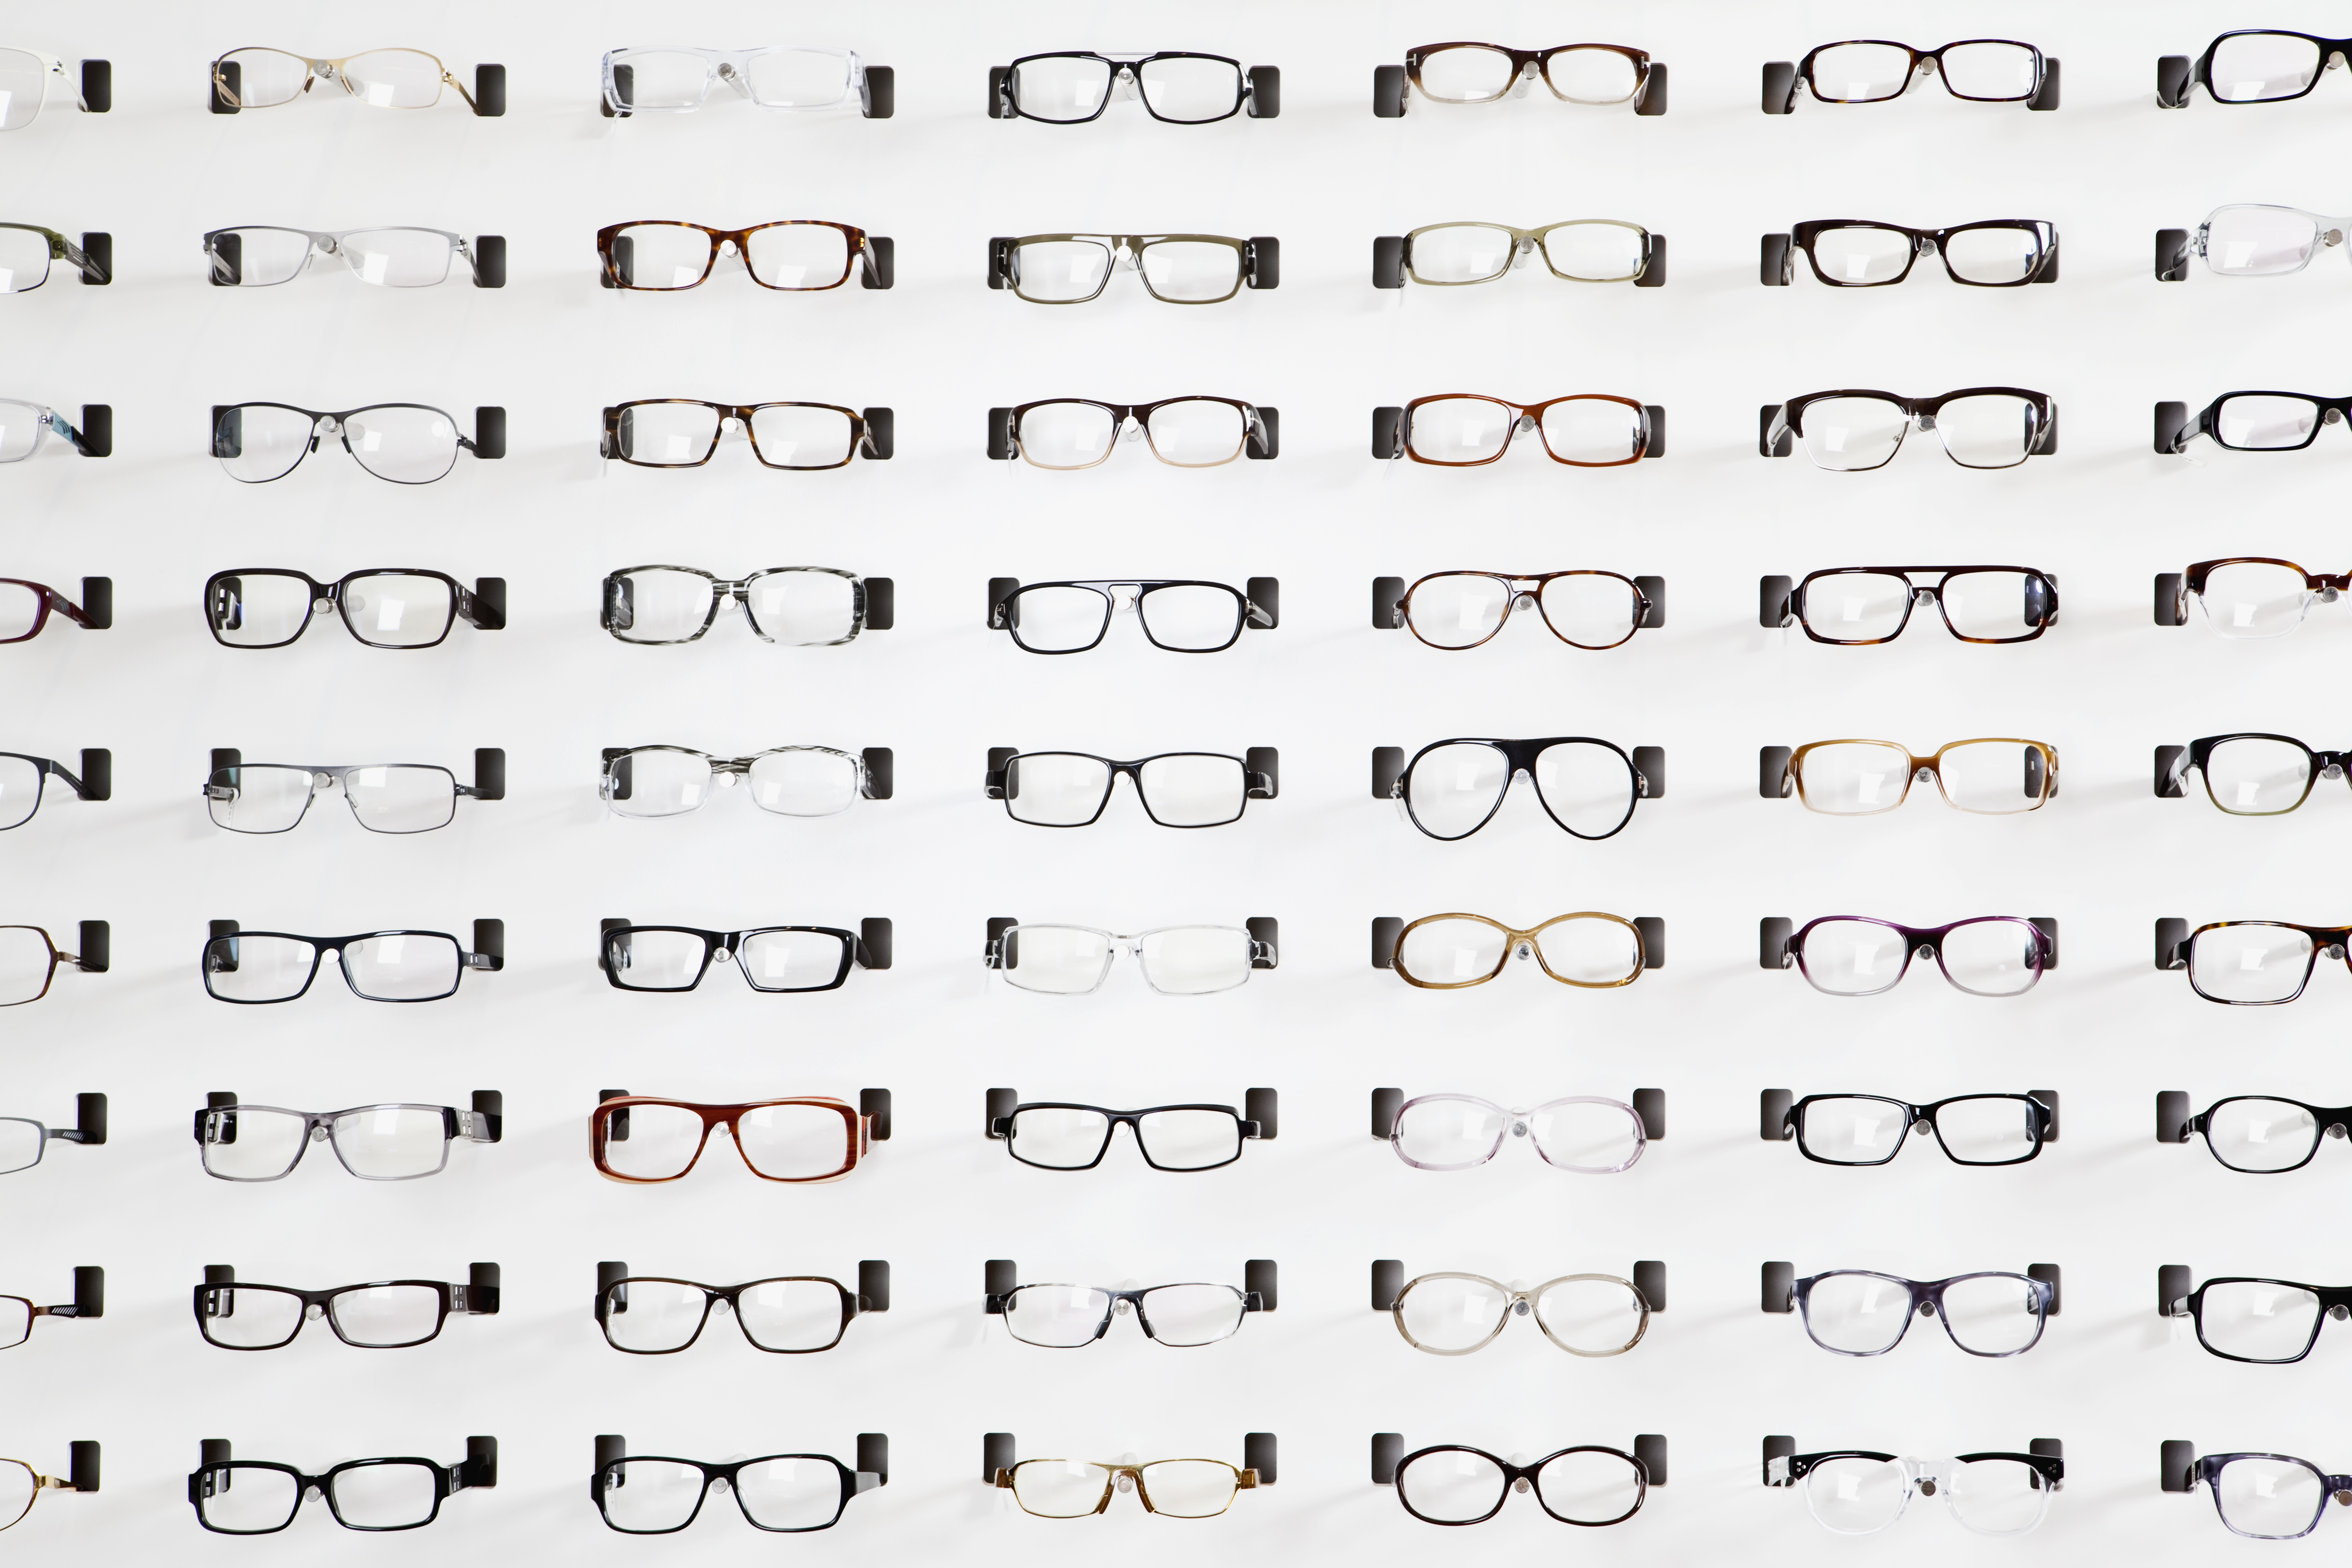 LensCrafter, Ray-Ban, and designer brands all mark up their glasses.